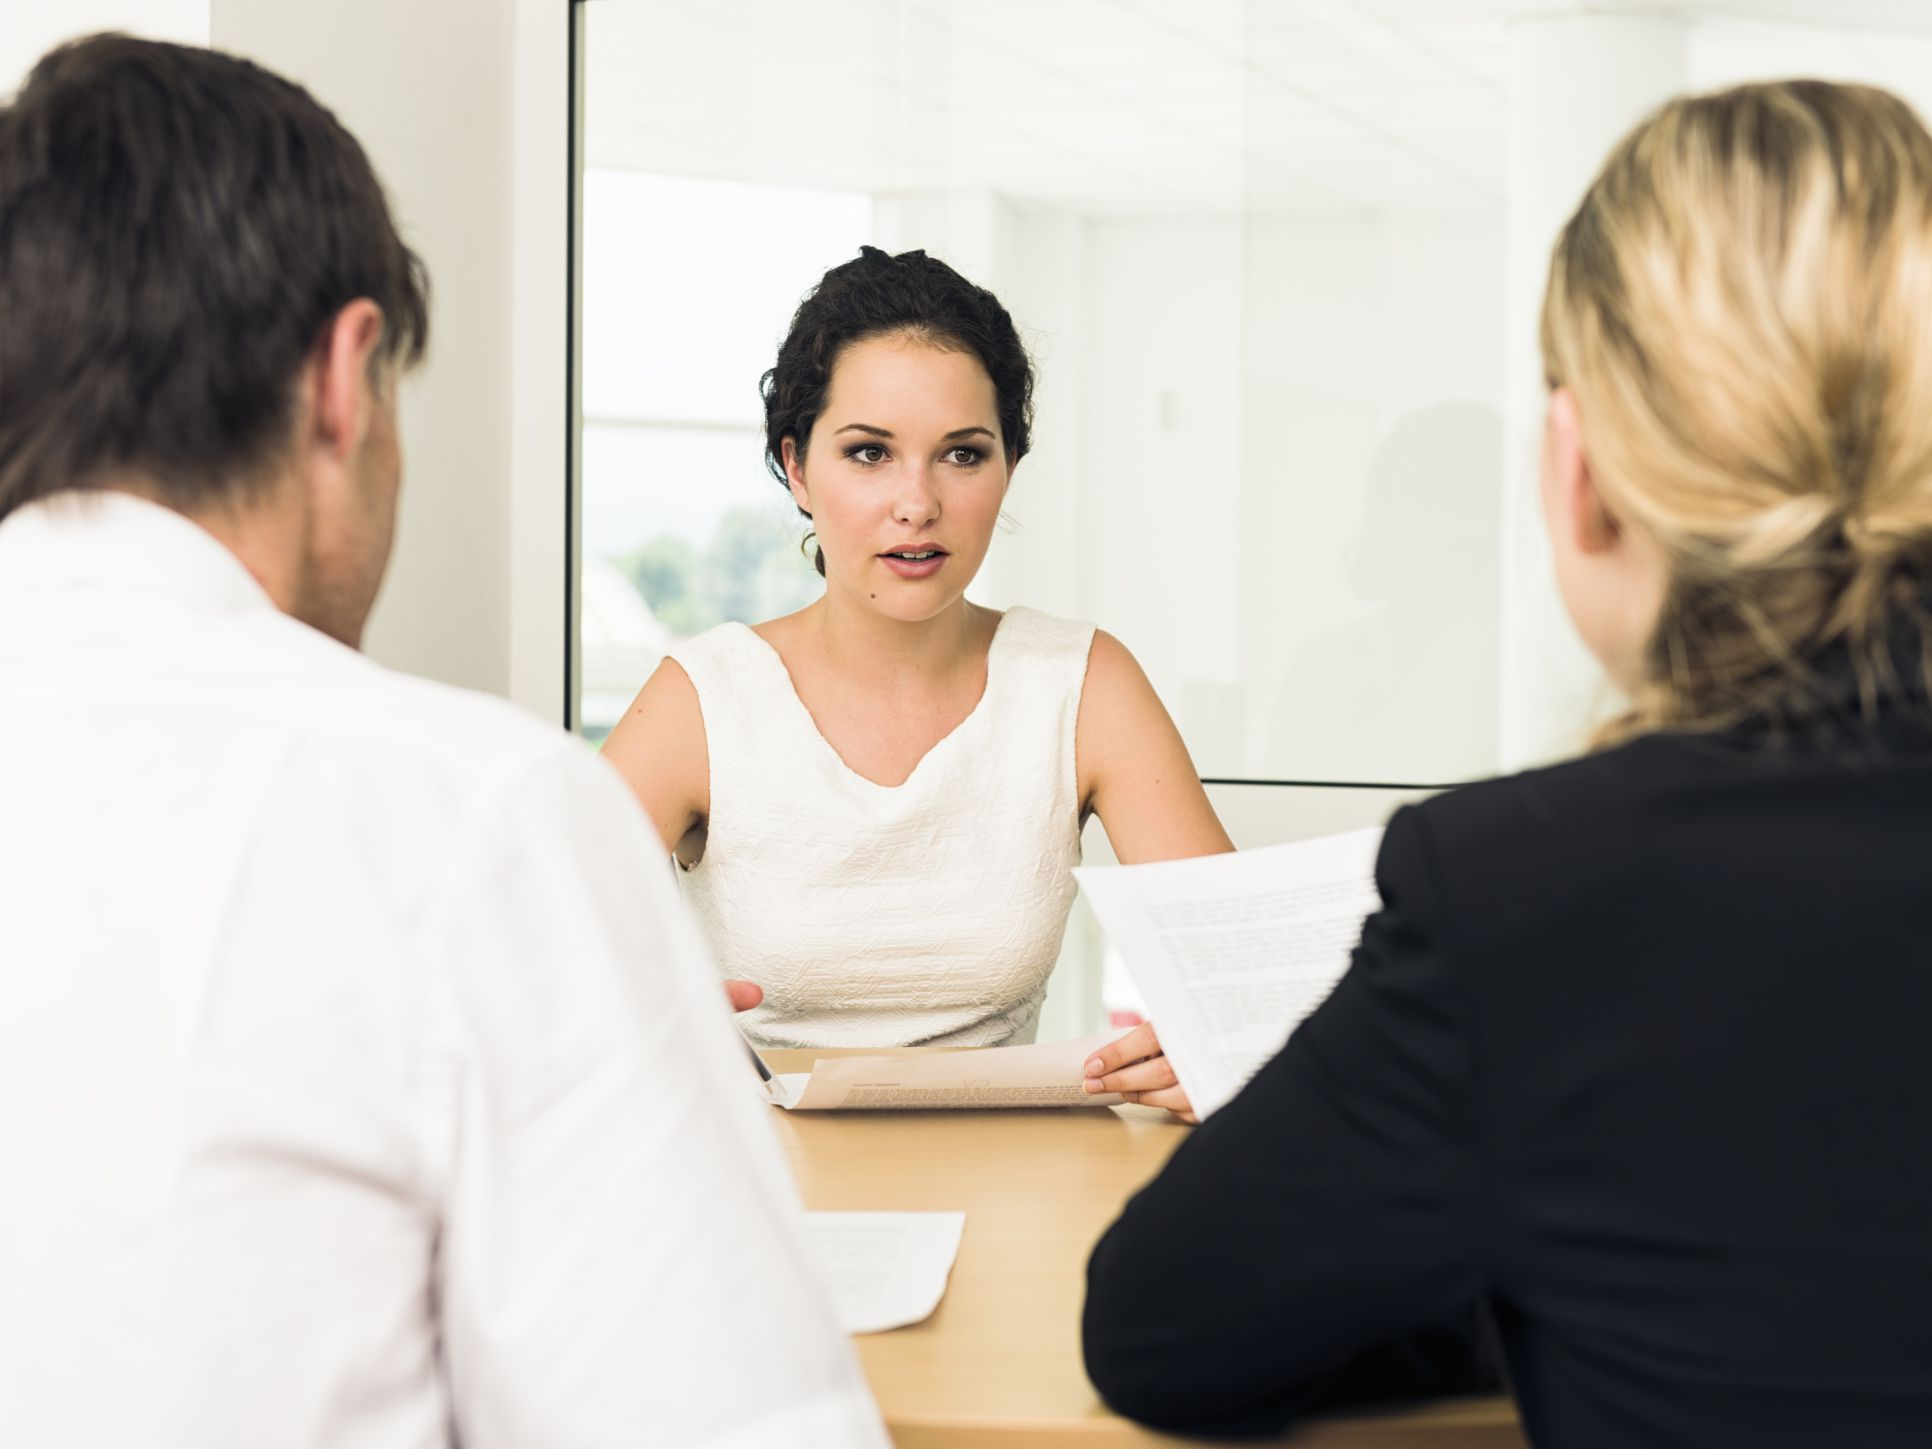 Steps to Prepare for a Third Job Interview